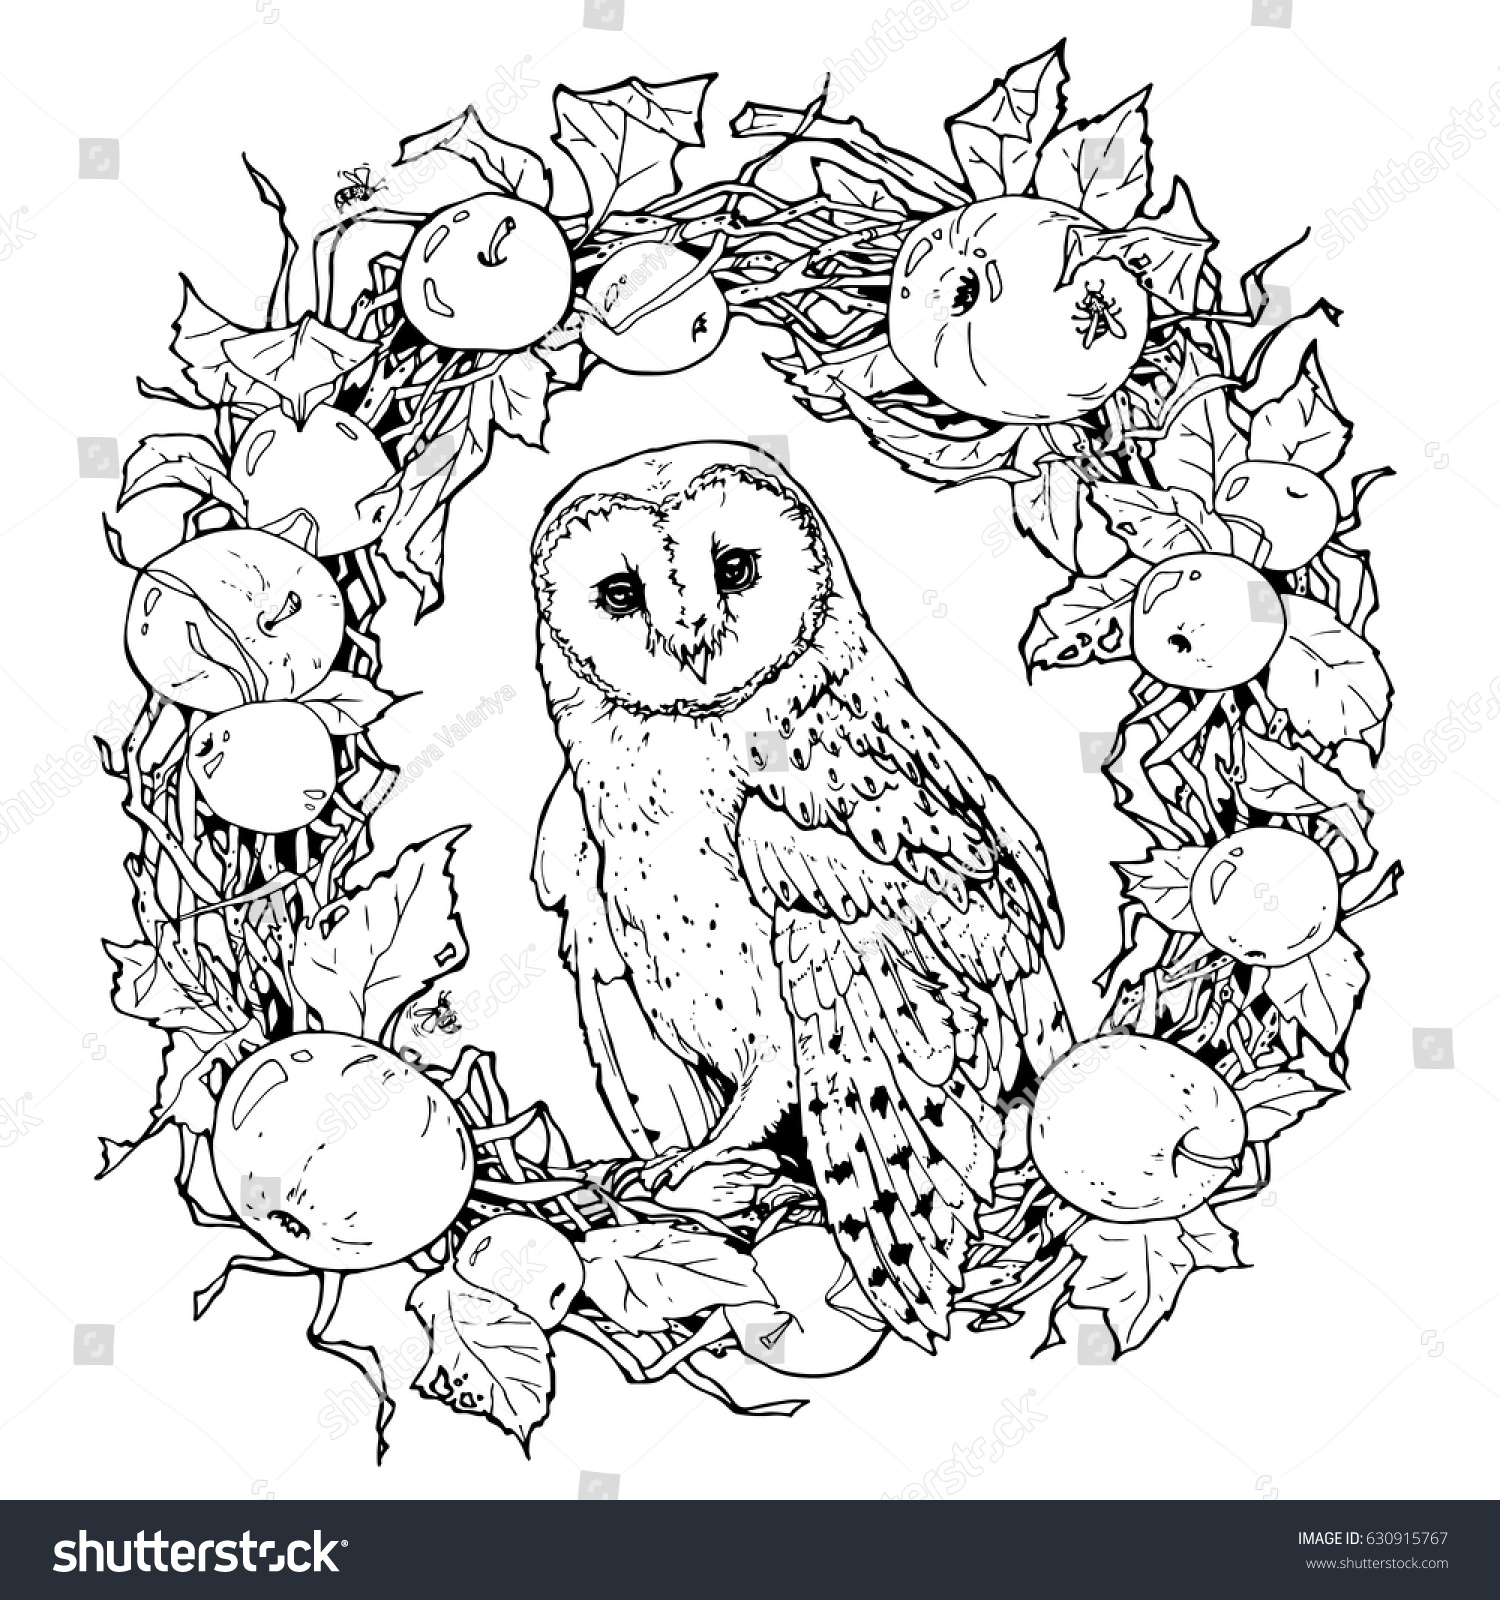 Hand Drawn Decorative Illustration Barn Owl Stock Vector 630915767 ...